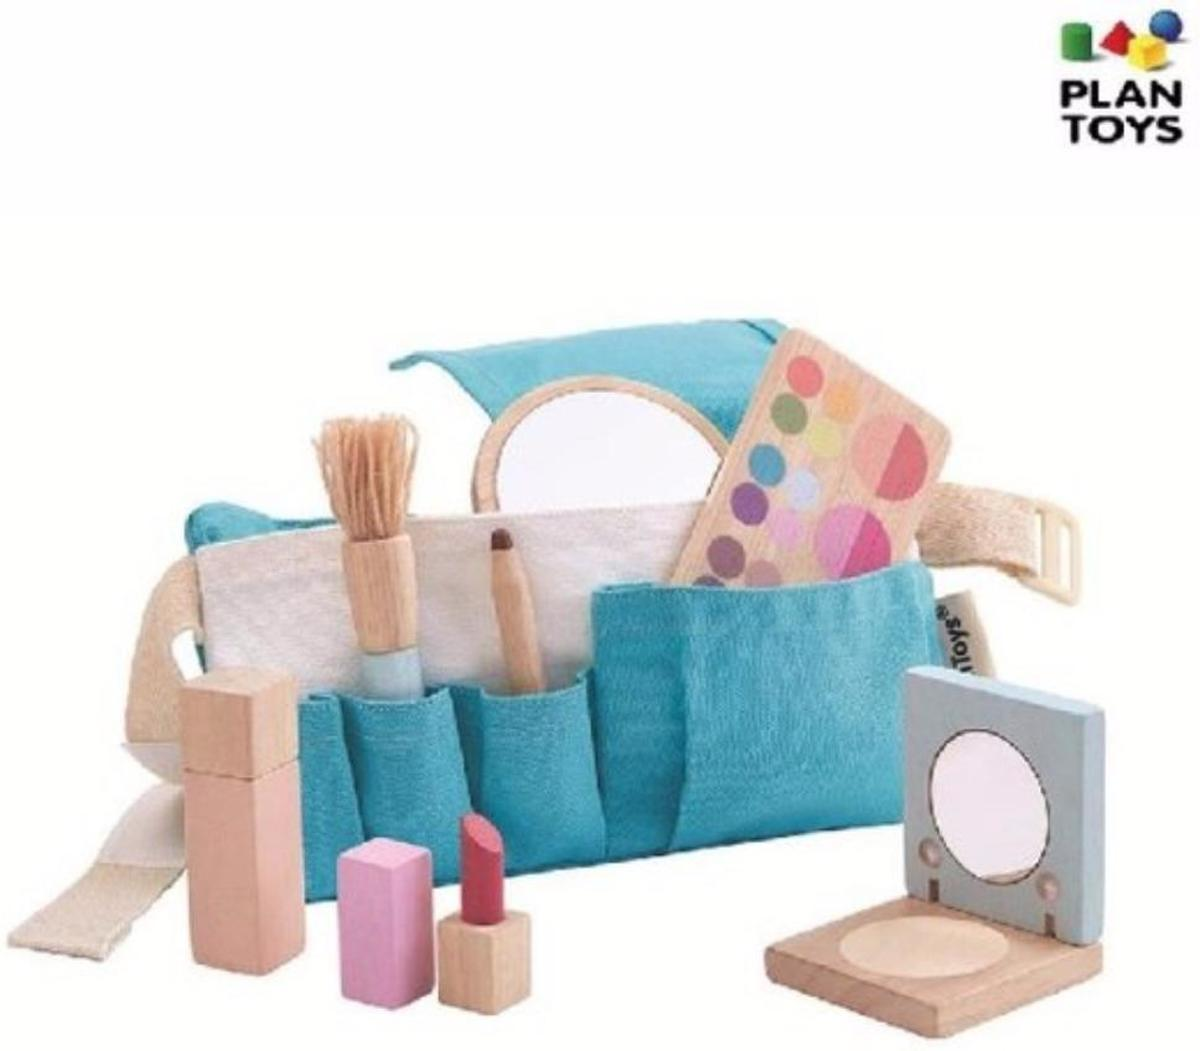 Plantoys - 3487 - Make-up set - Opmaakset